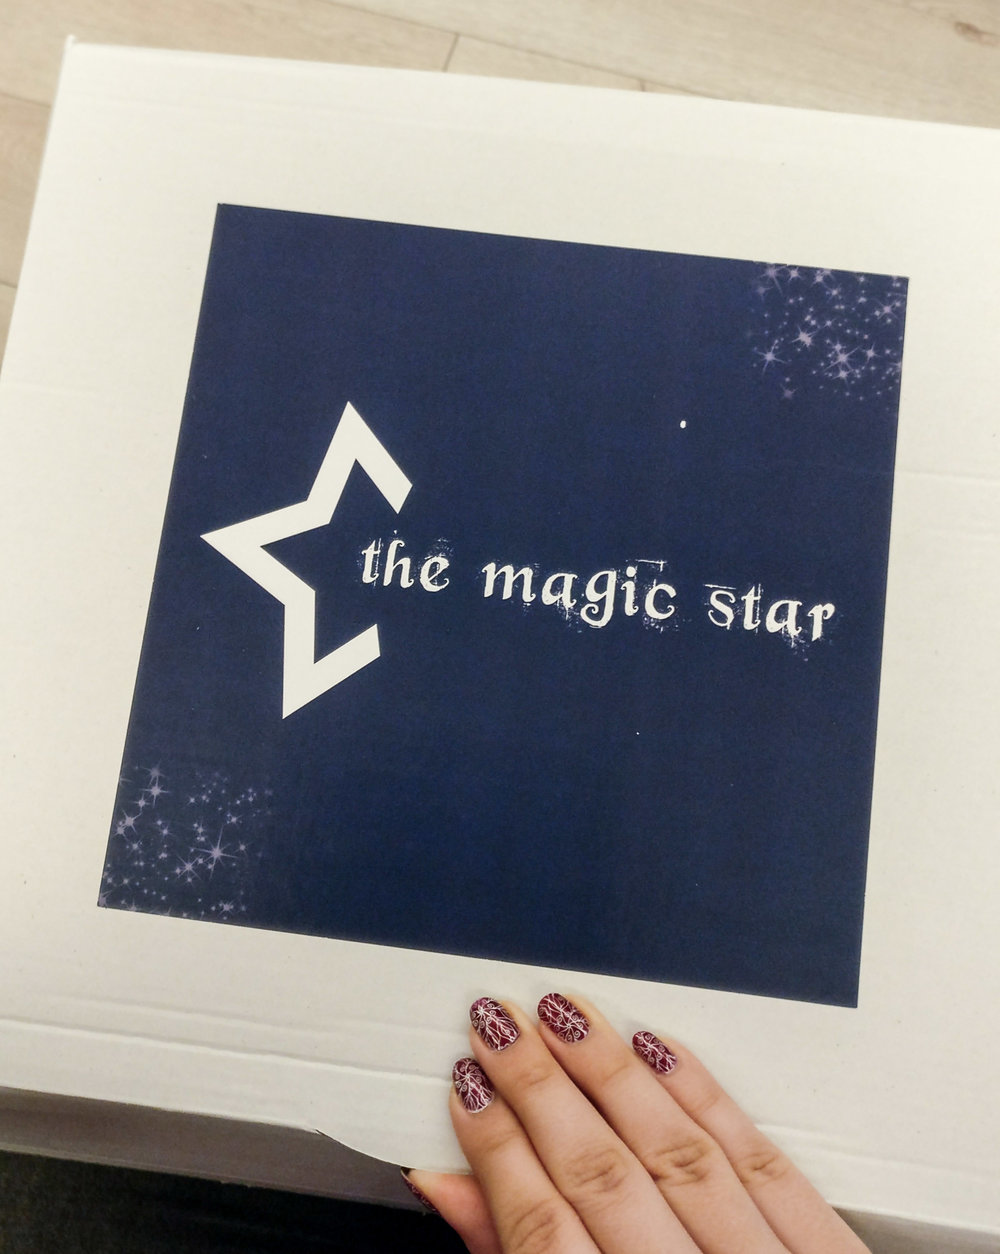 the-magic-star-box.jpg